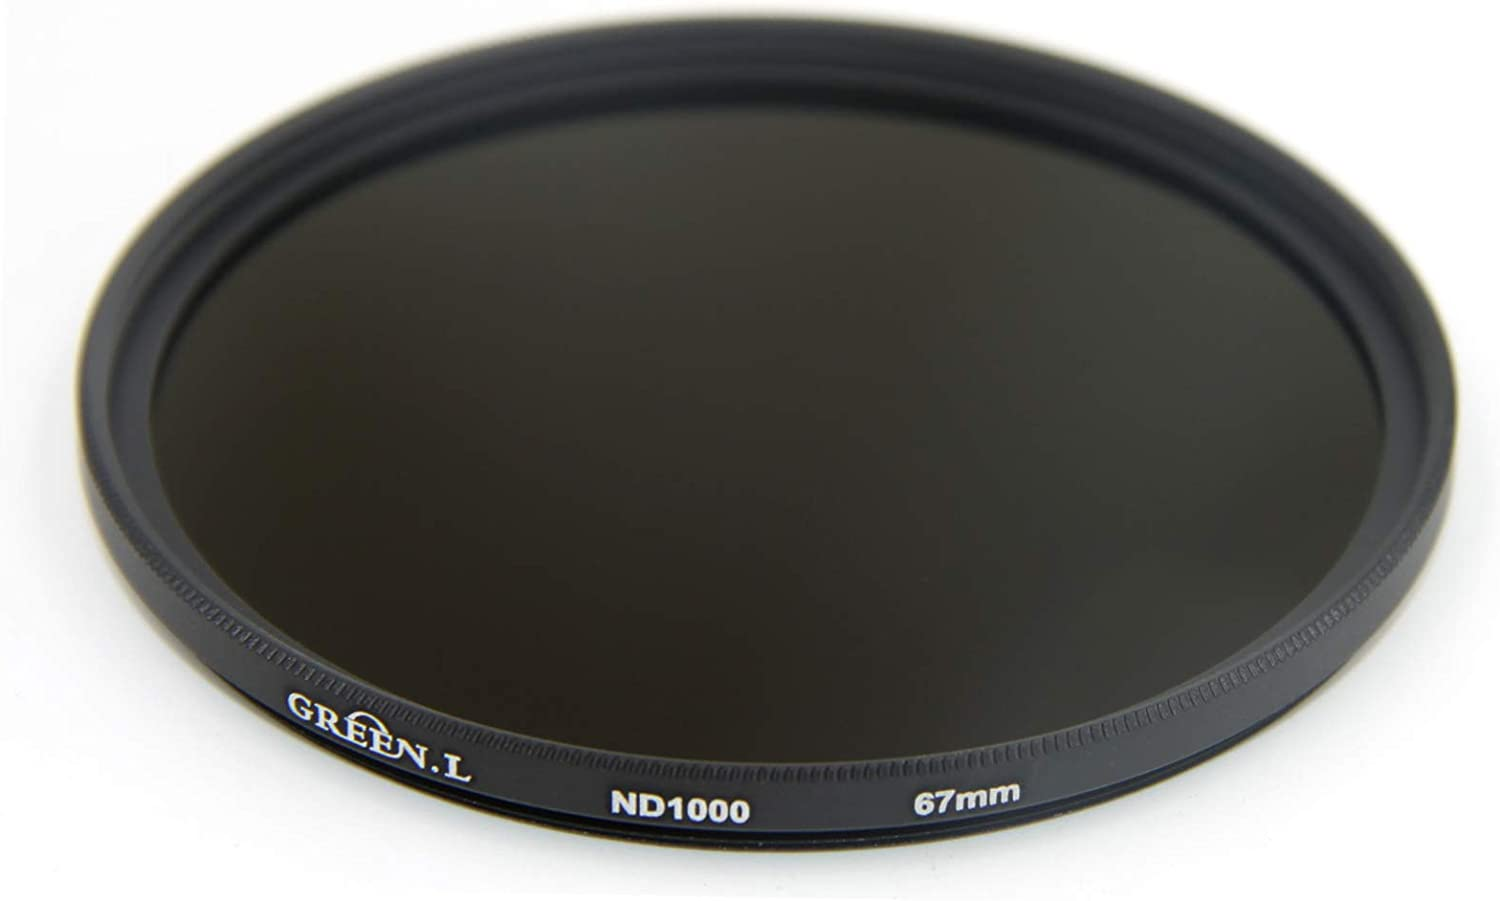 GREEN.L 46mm ND1000 Filter Slim Neutral Density ND Filter Optical Glass 10 Stop